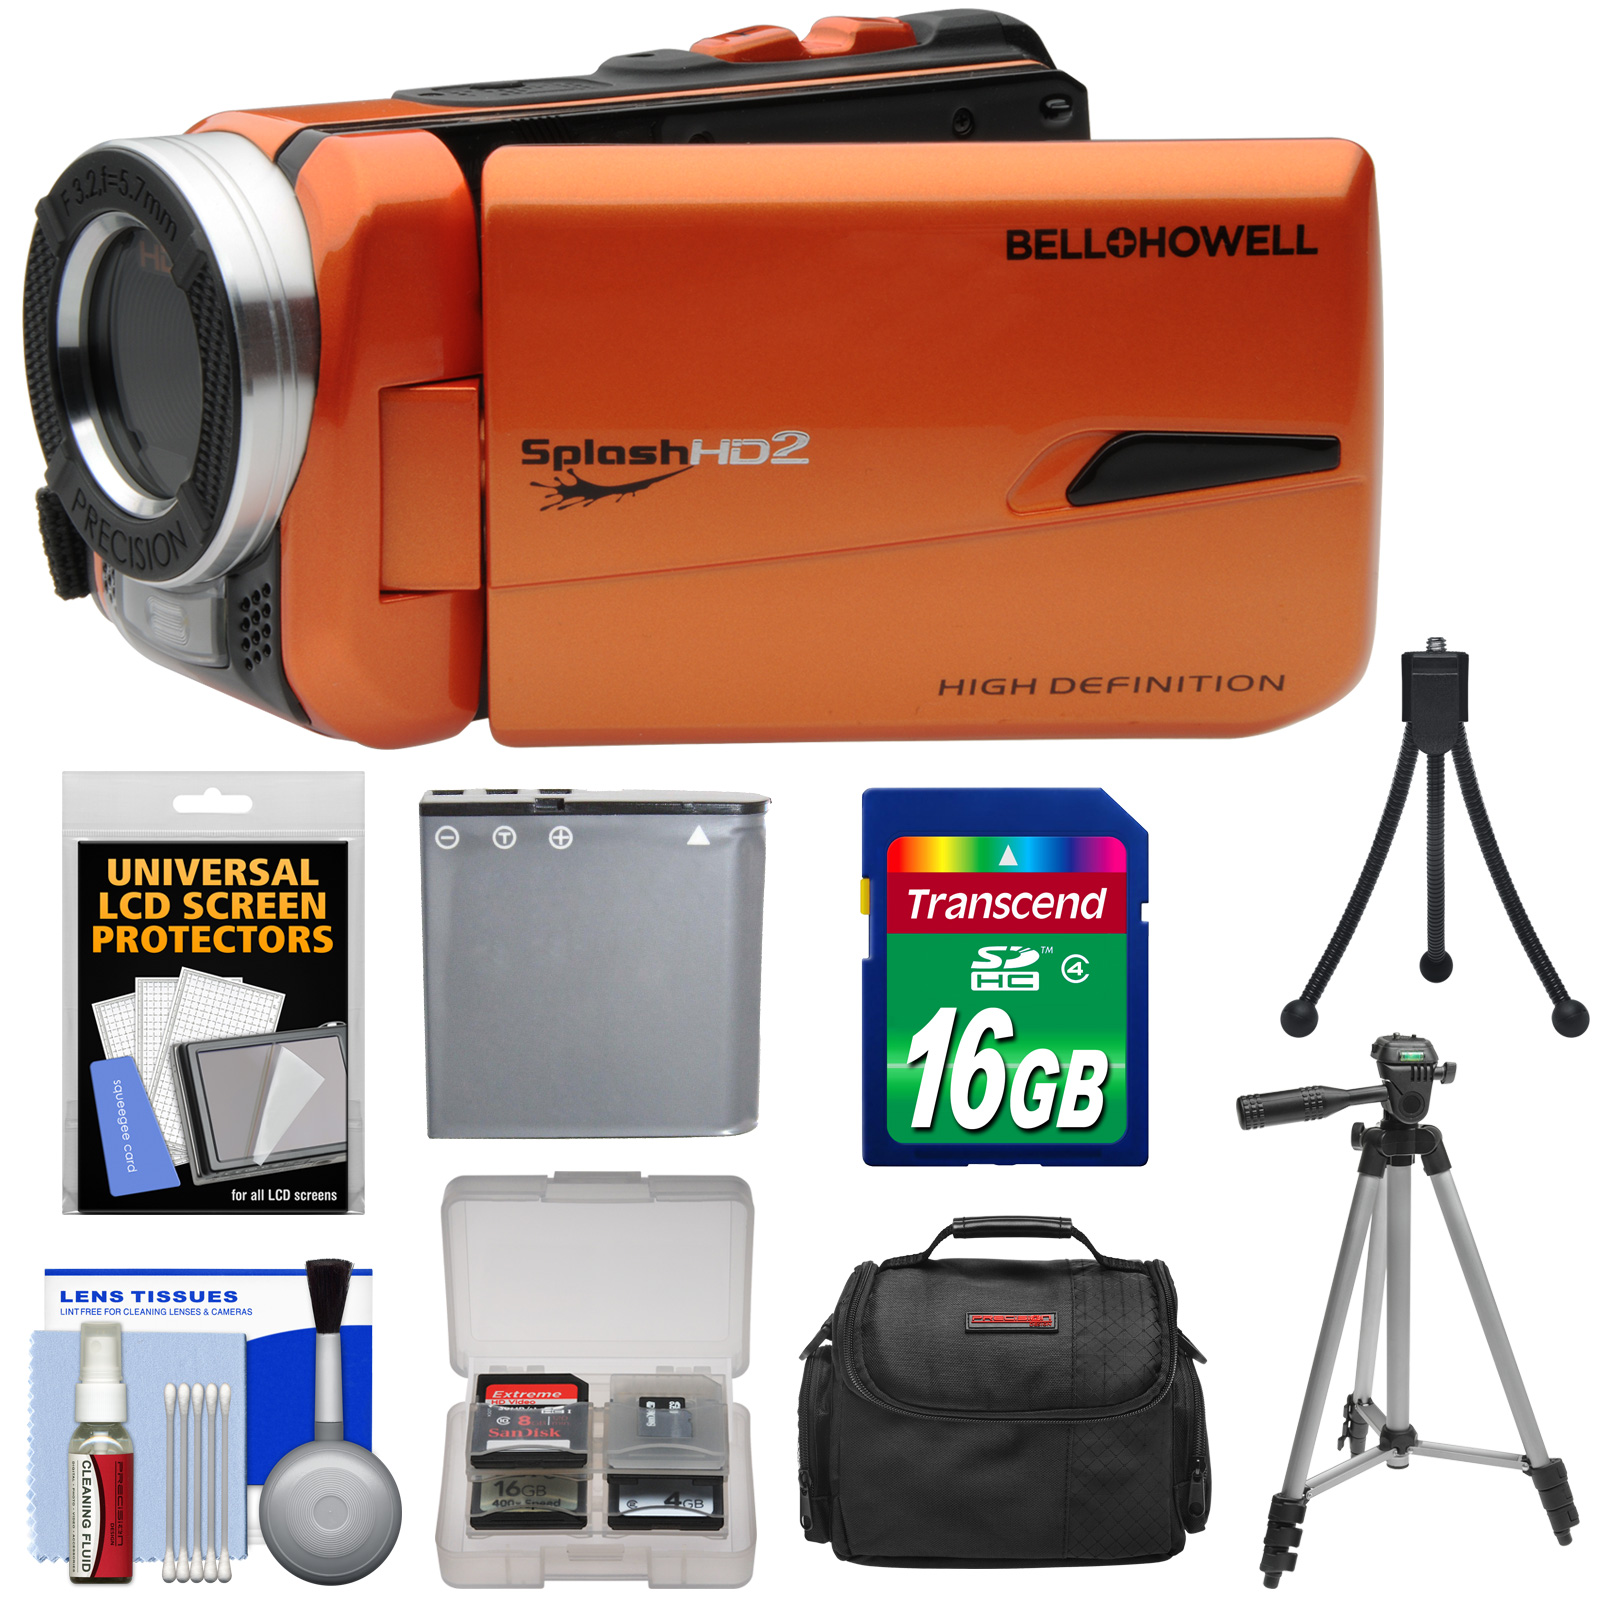 Bell & Howell Splash HD WV50 Waterproof Digital Video Cam...